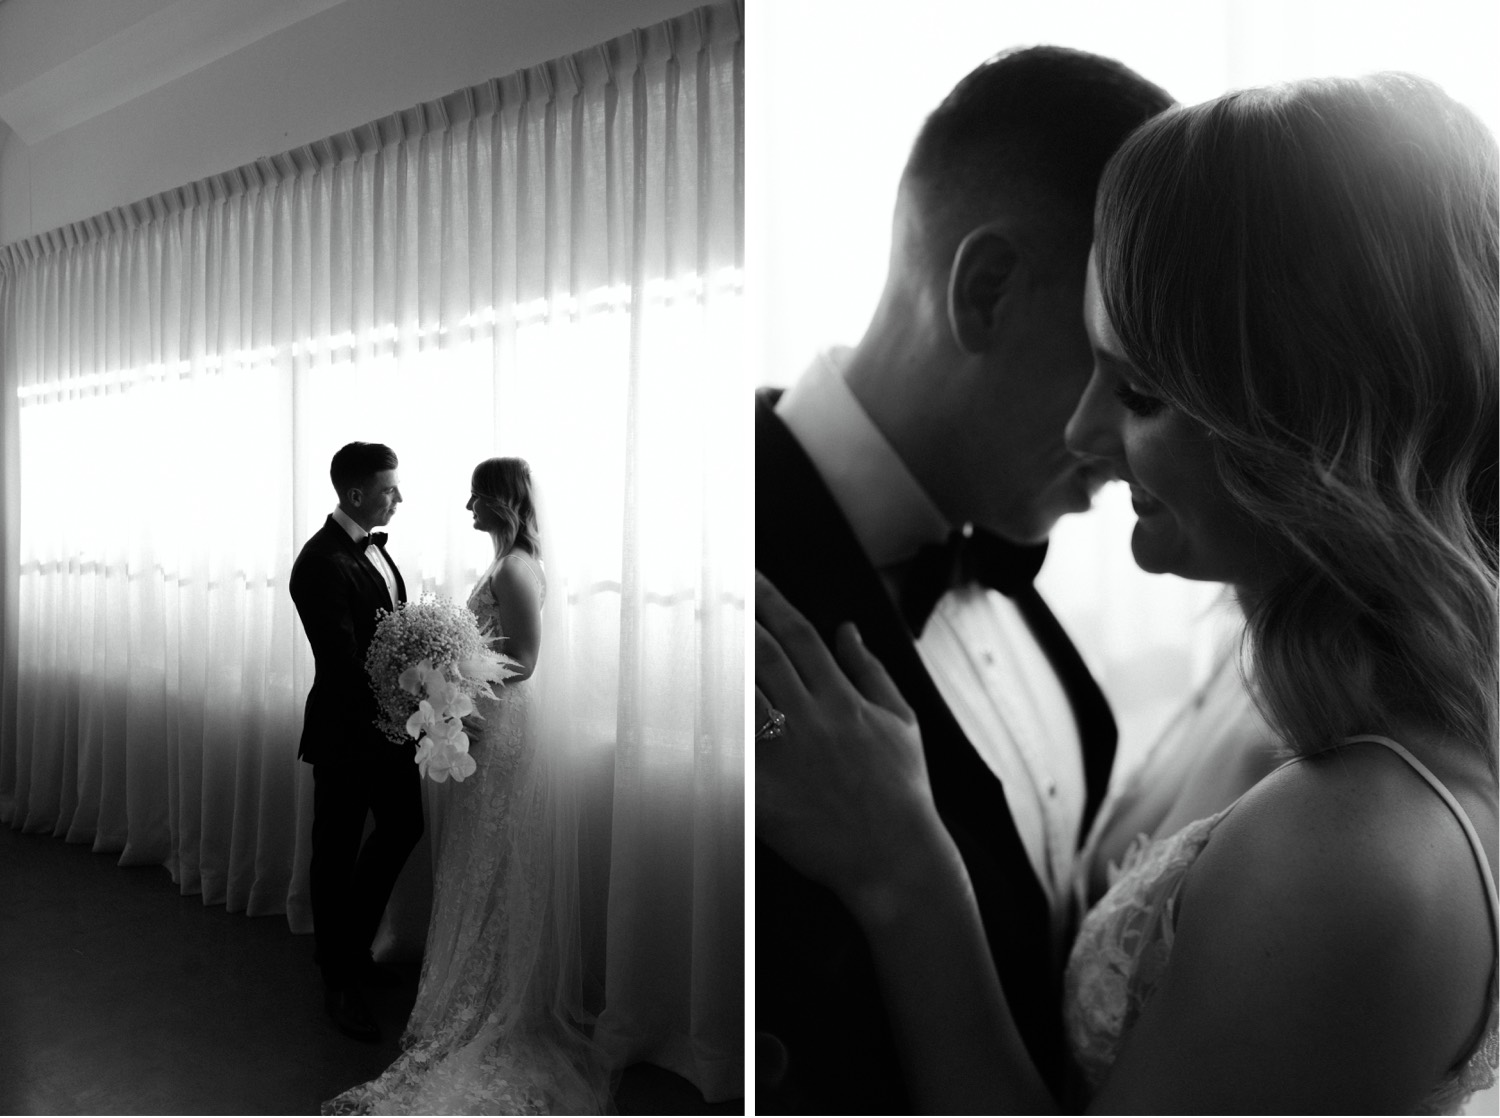 romantic back lit portraits of bride and groom in front of a curtain